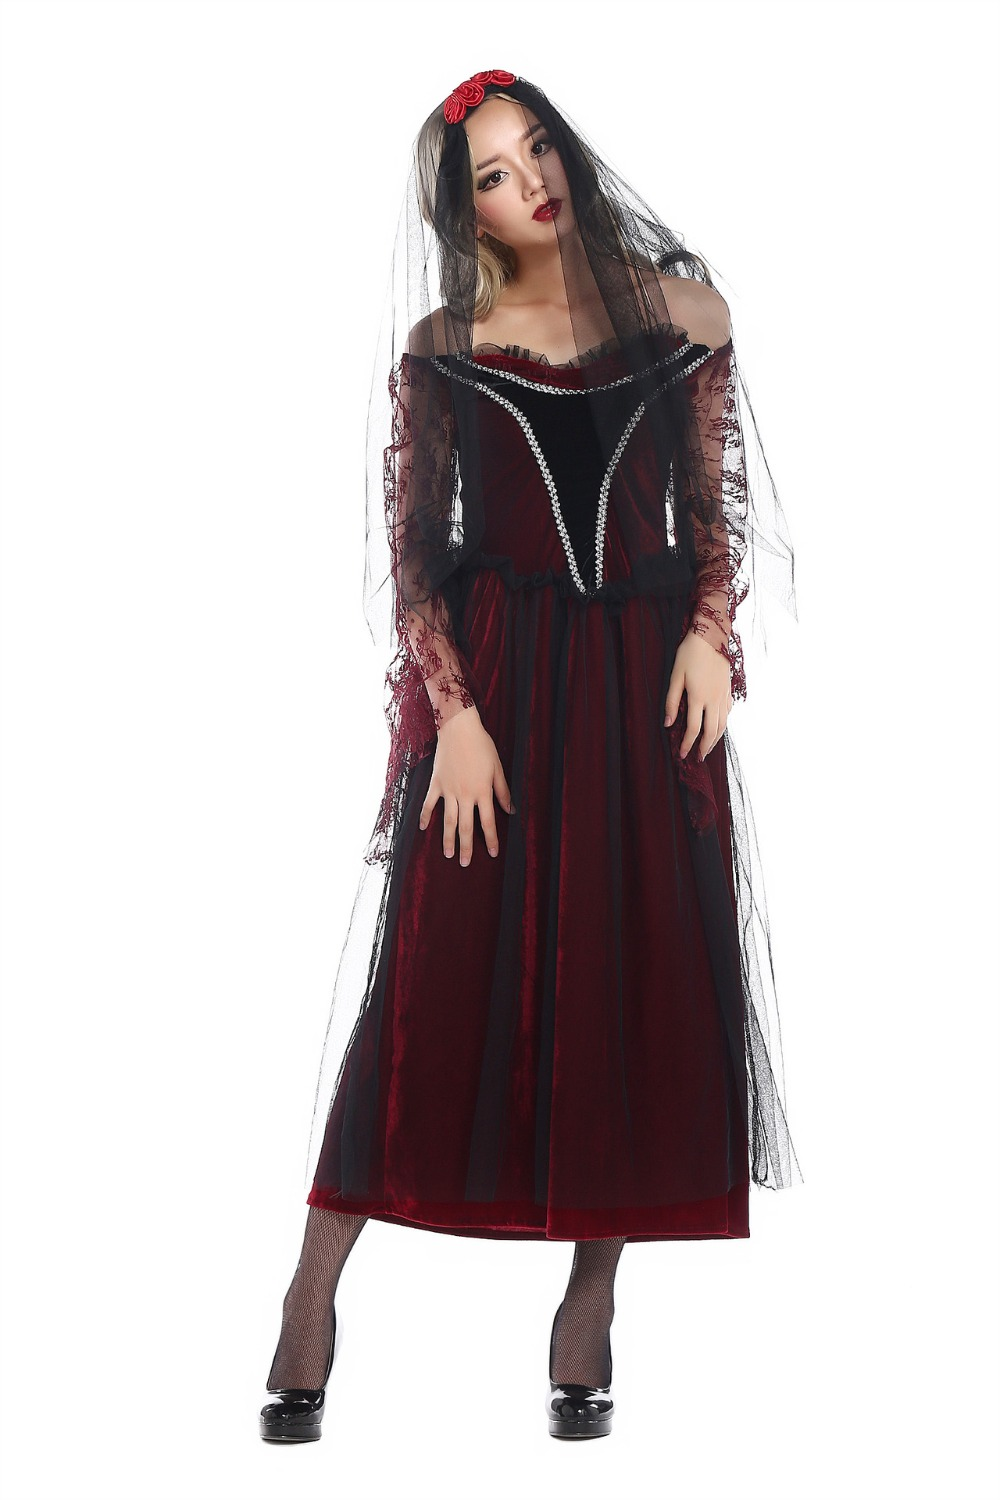 Sexy Long Dress Queen Halloween Witch Costume Women Adult Gothic ...